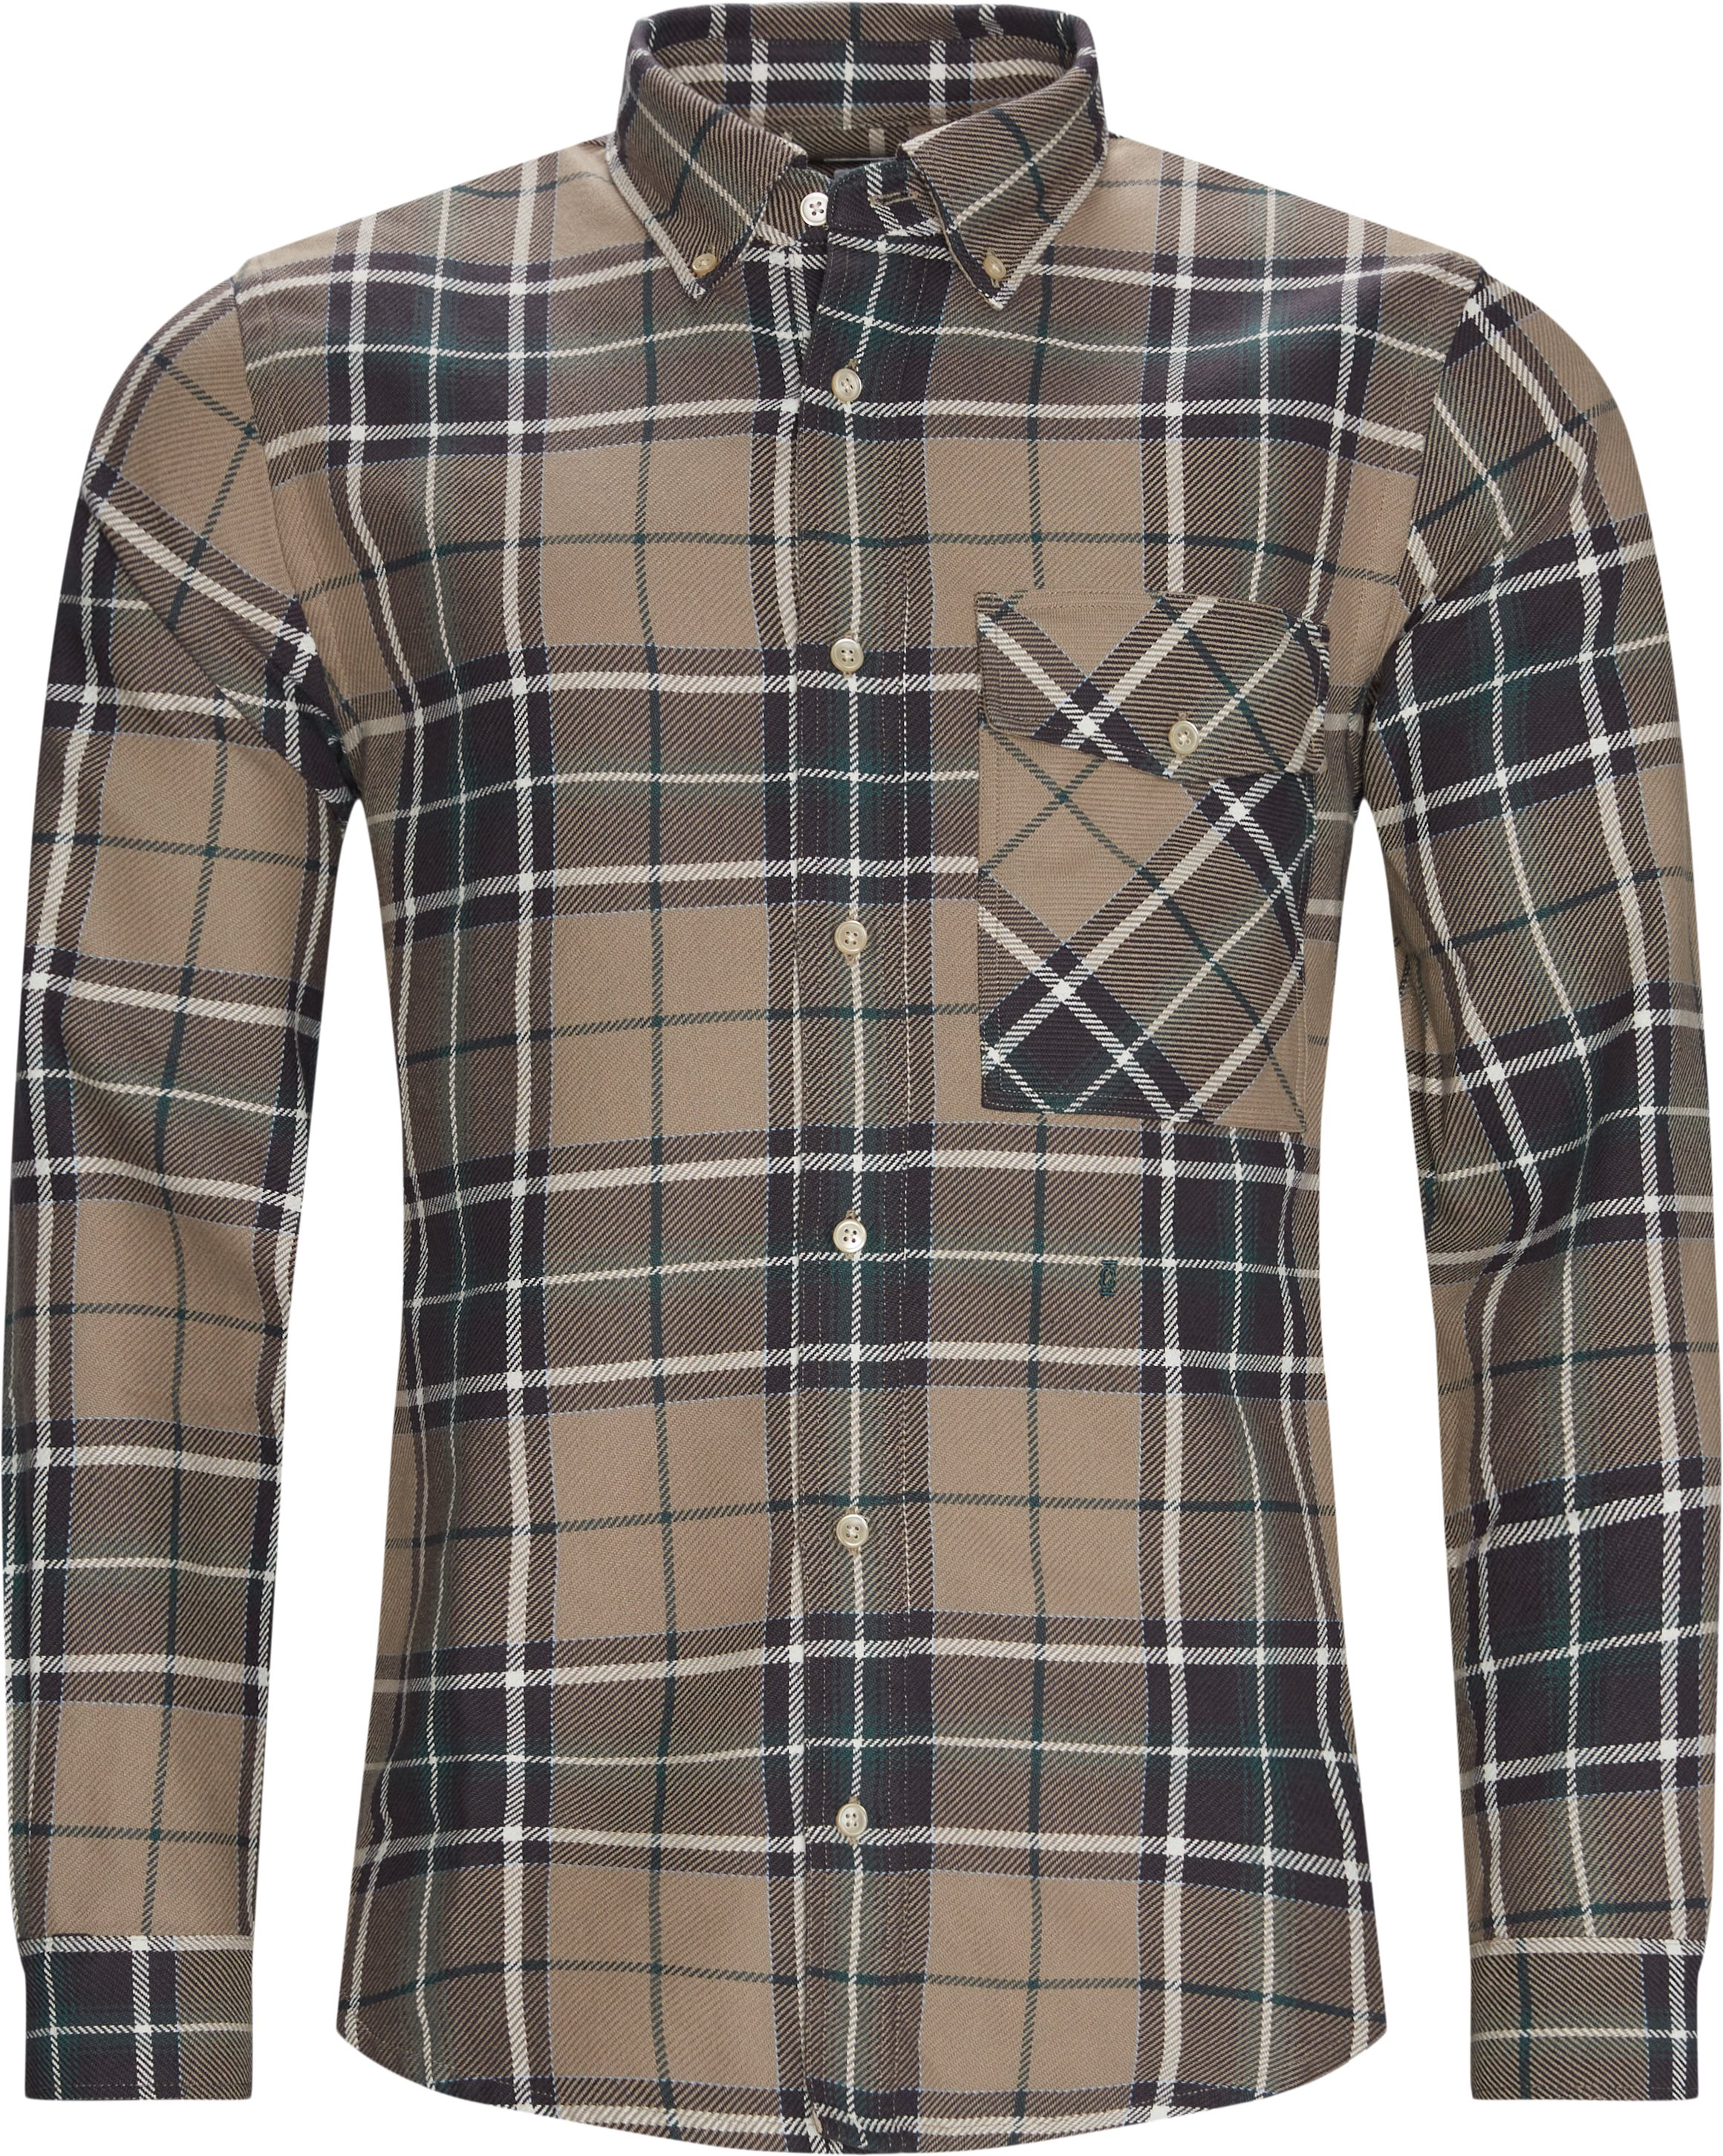 Relaxed Button Down - Skjorter - Relaxed fit - Grøn